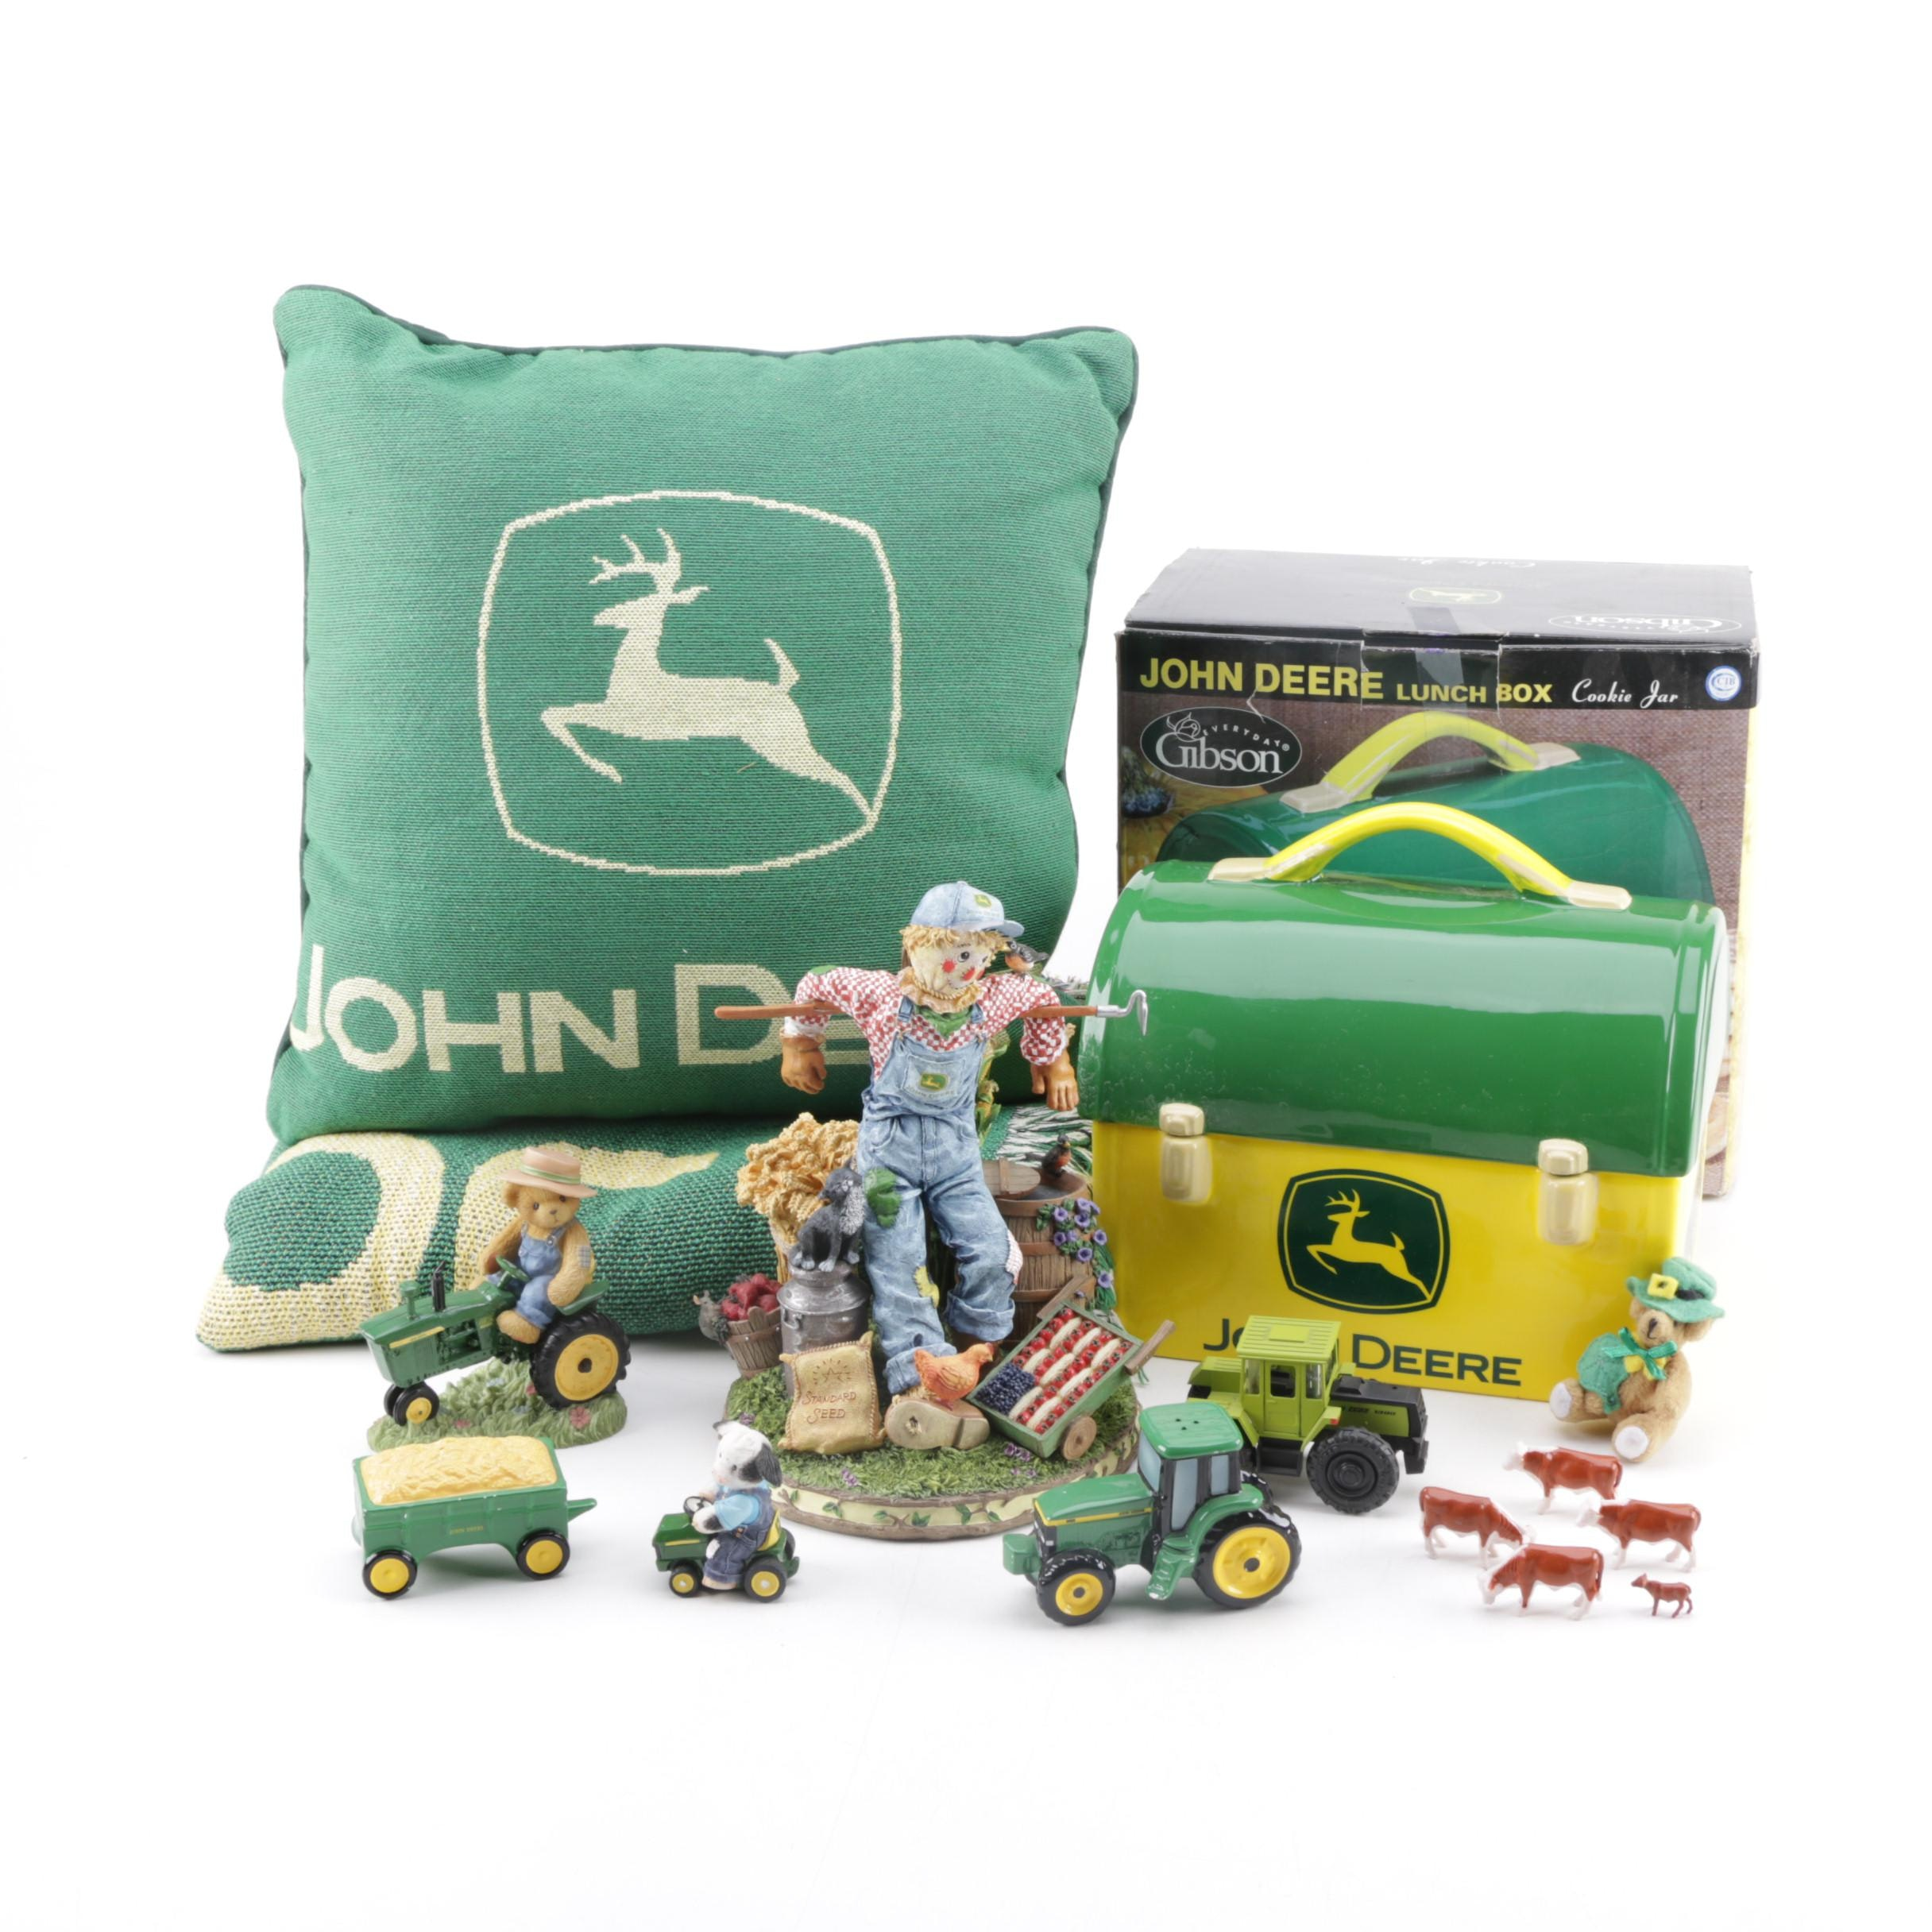 John Deere Collectibles And More